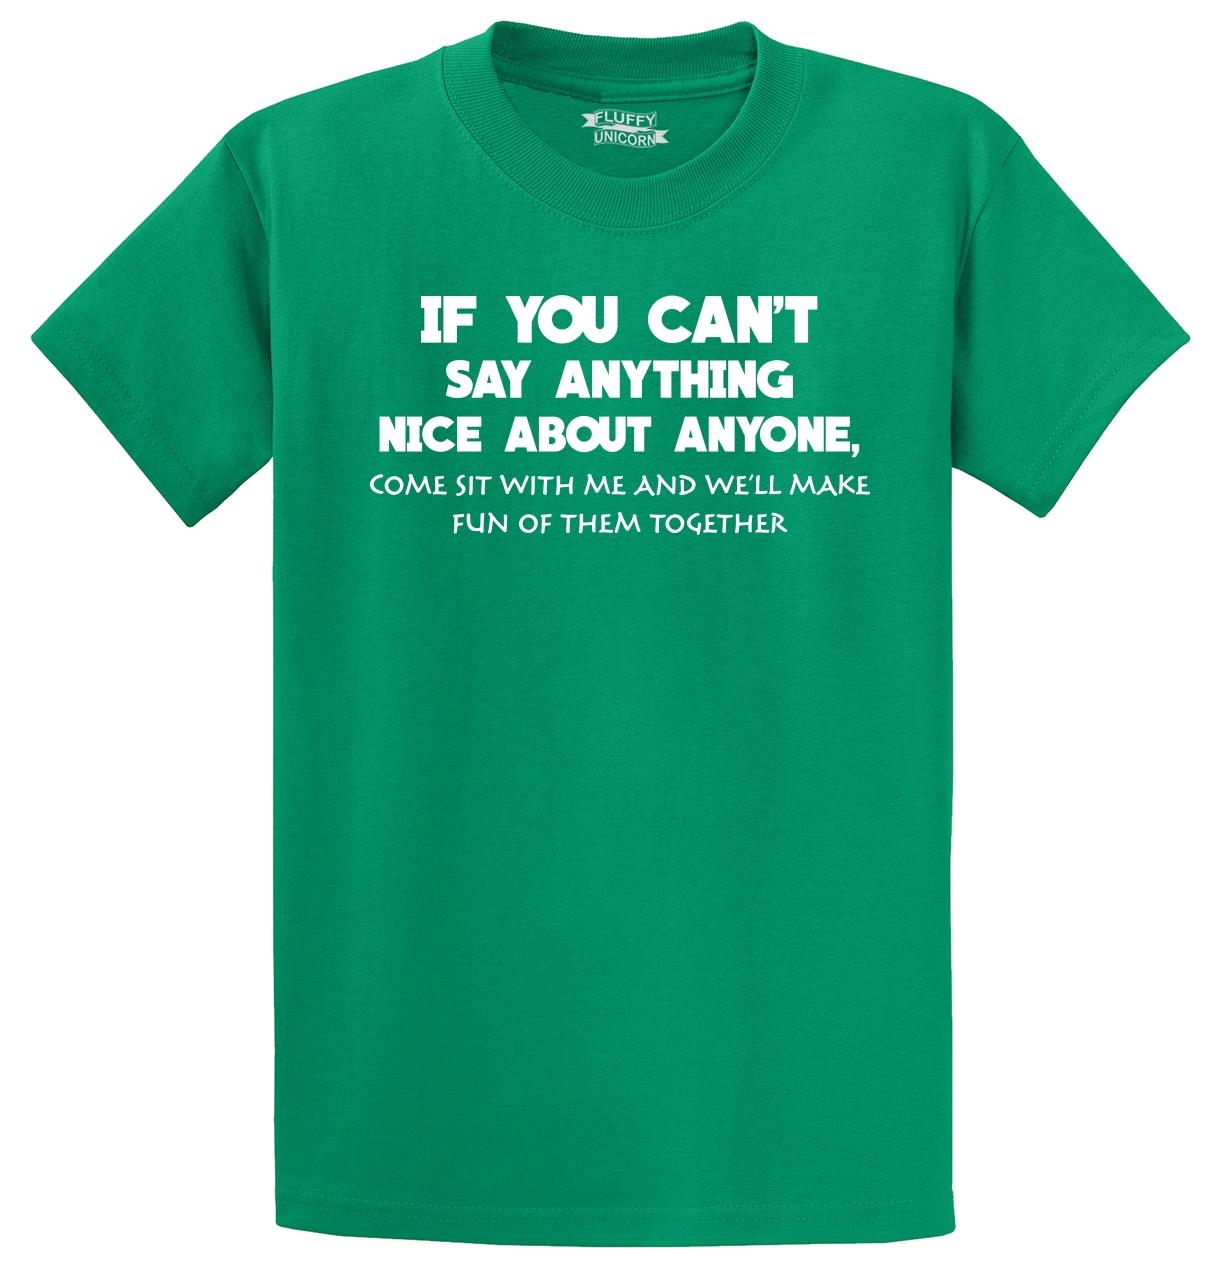 Can-039-t-Say-Anything-Nice-Come-To-Me-Funny-T-Shirt-Rude-College-Party-Tee